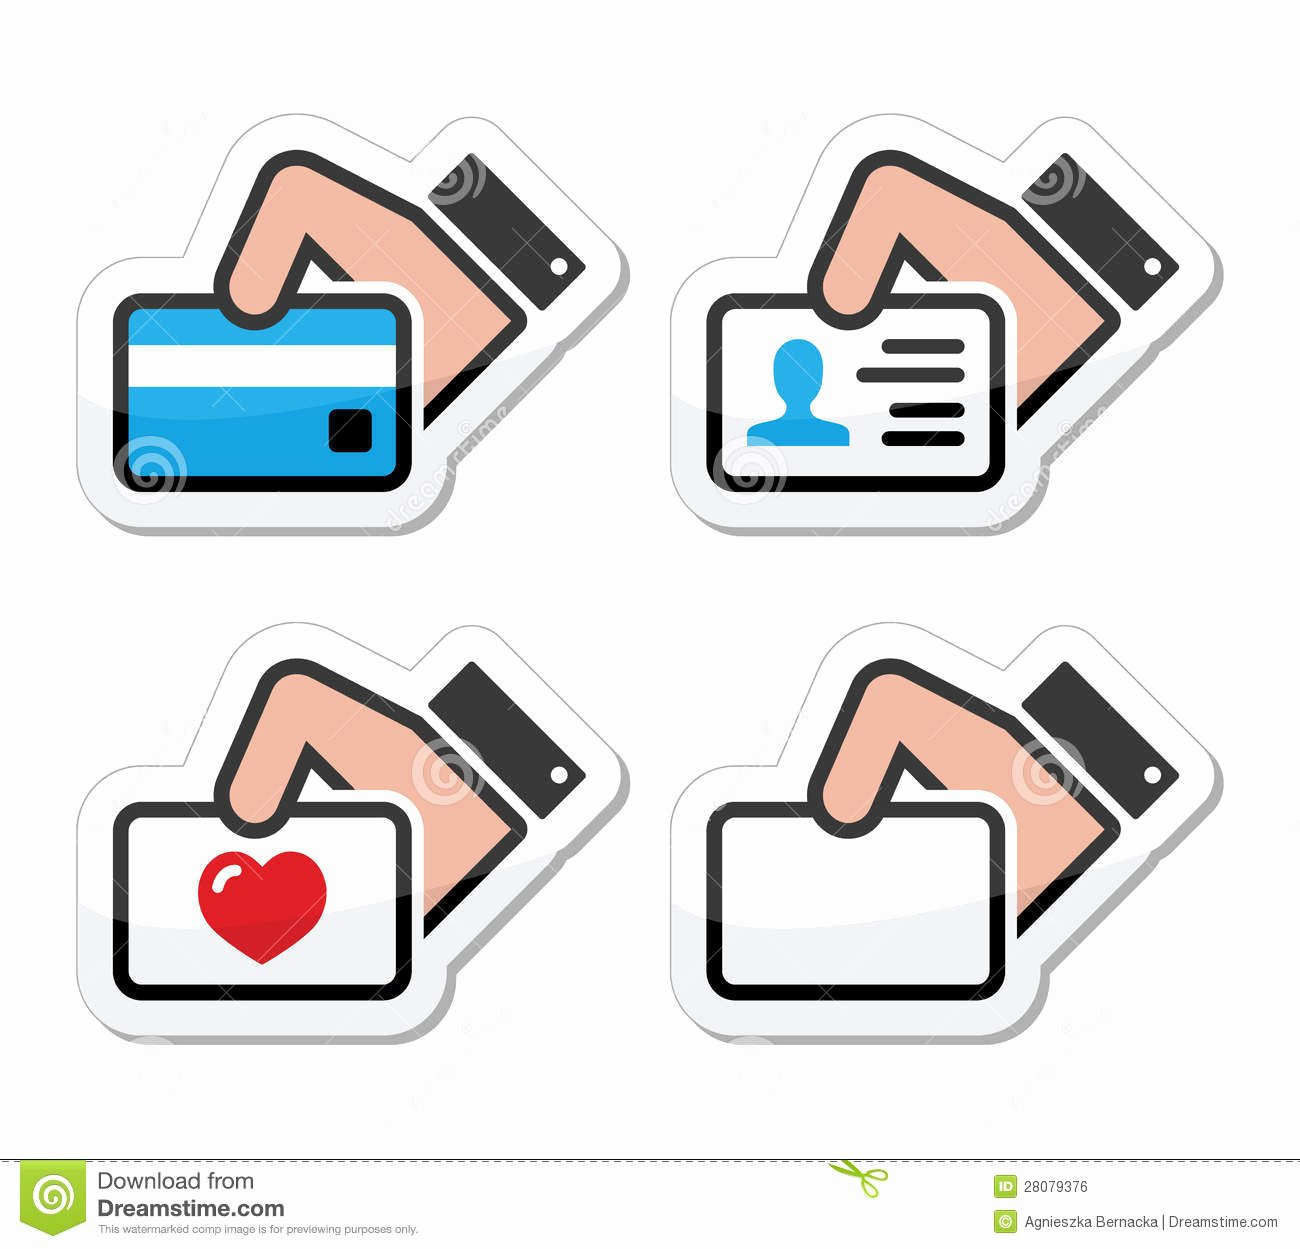 Icon for Business Cards Unique Hand Holding Credit Card Business Card Icons Set Stock Illustration Illustration Of Glossy